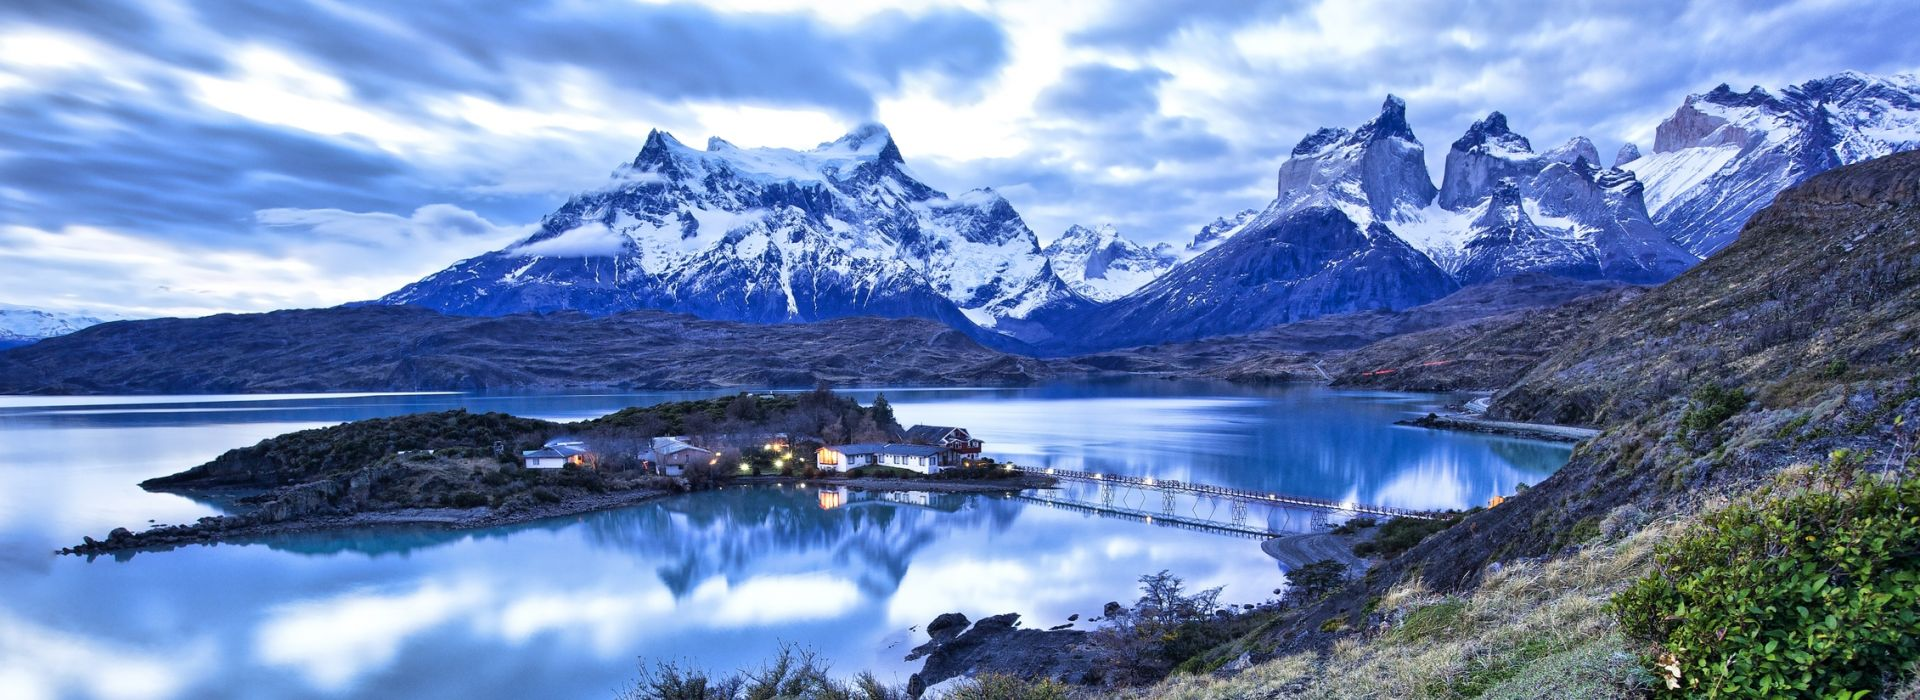 Cultural, religious and historic sites Tours in Patagonia